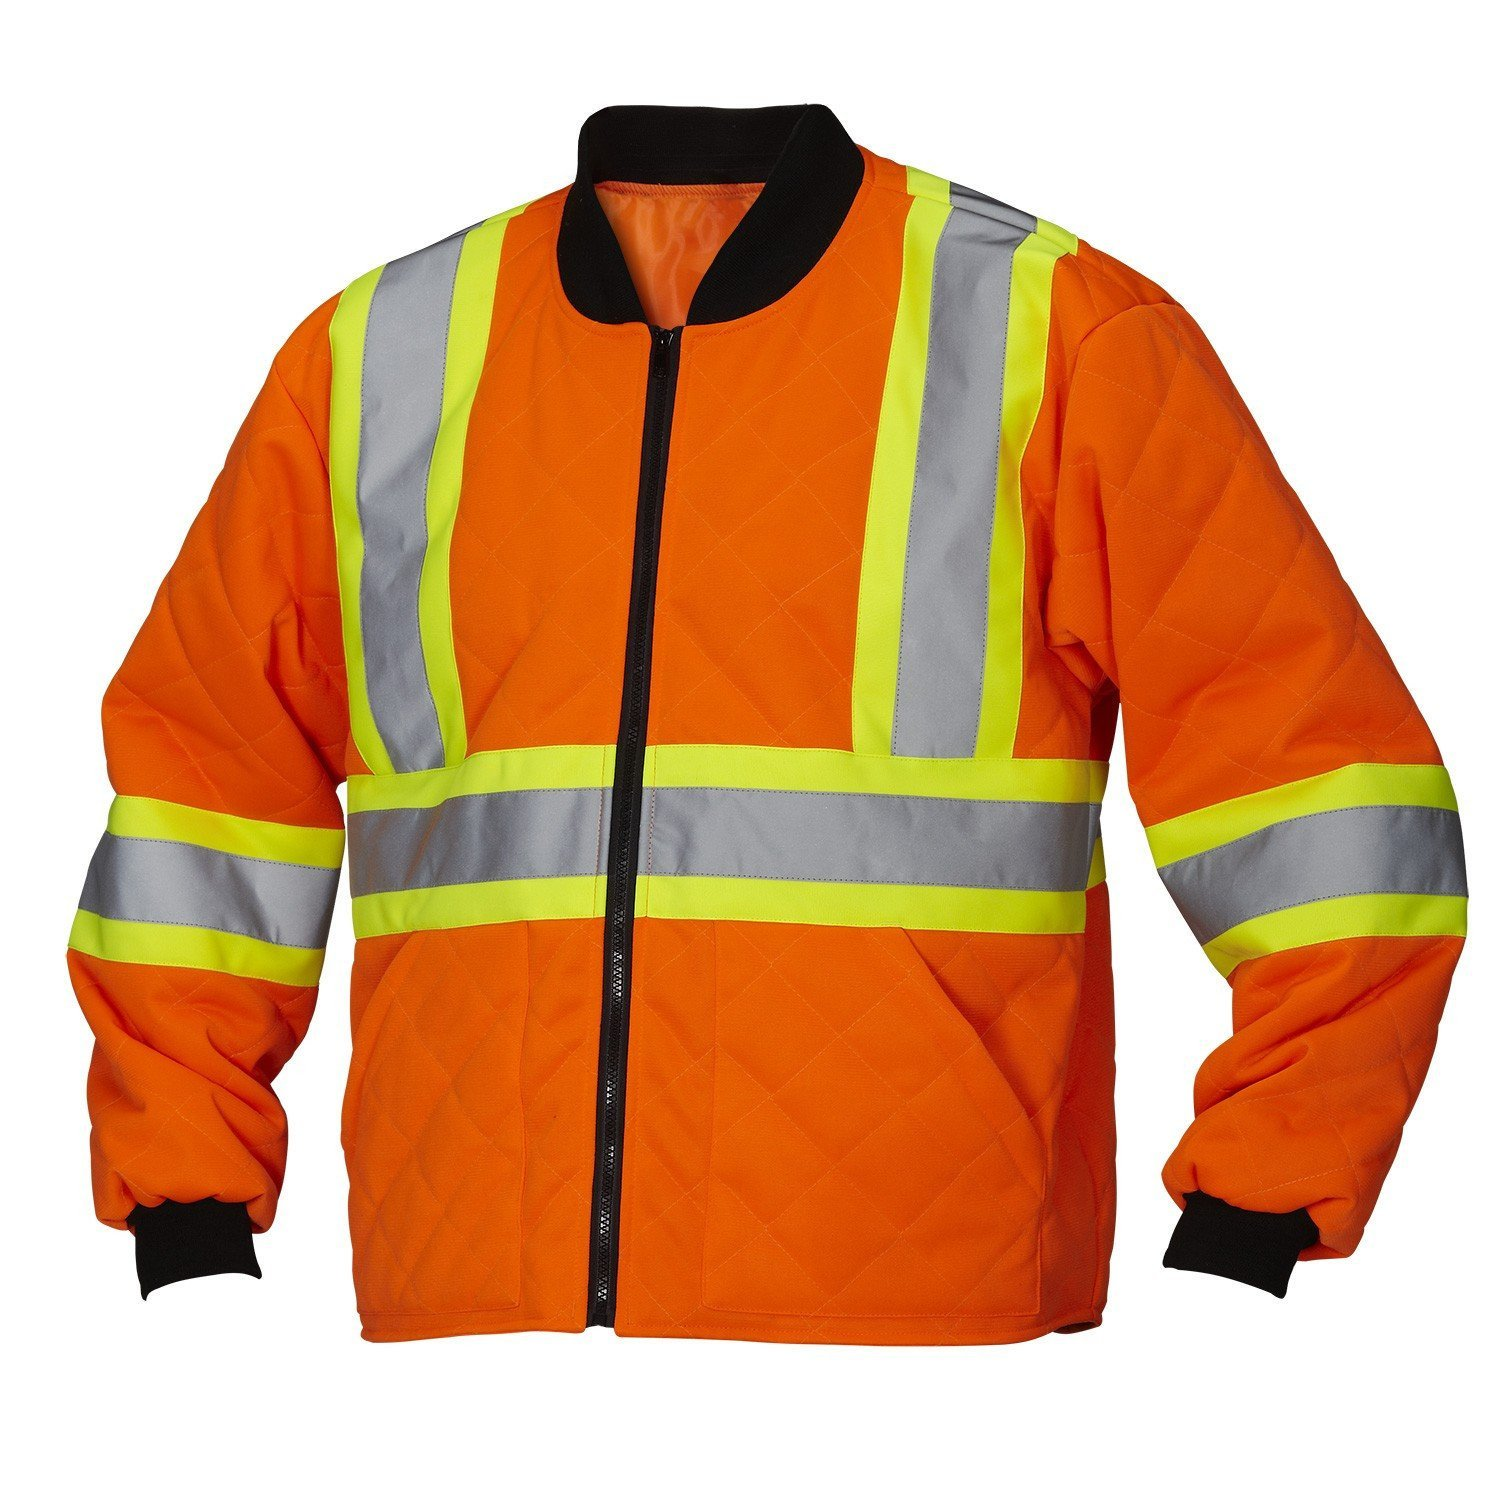 Forcefield Hi-Vis Safety Freezer Jacket 024-FJQOR